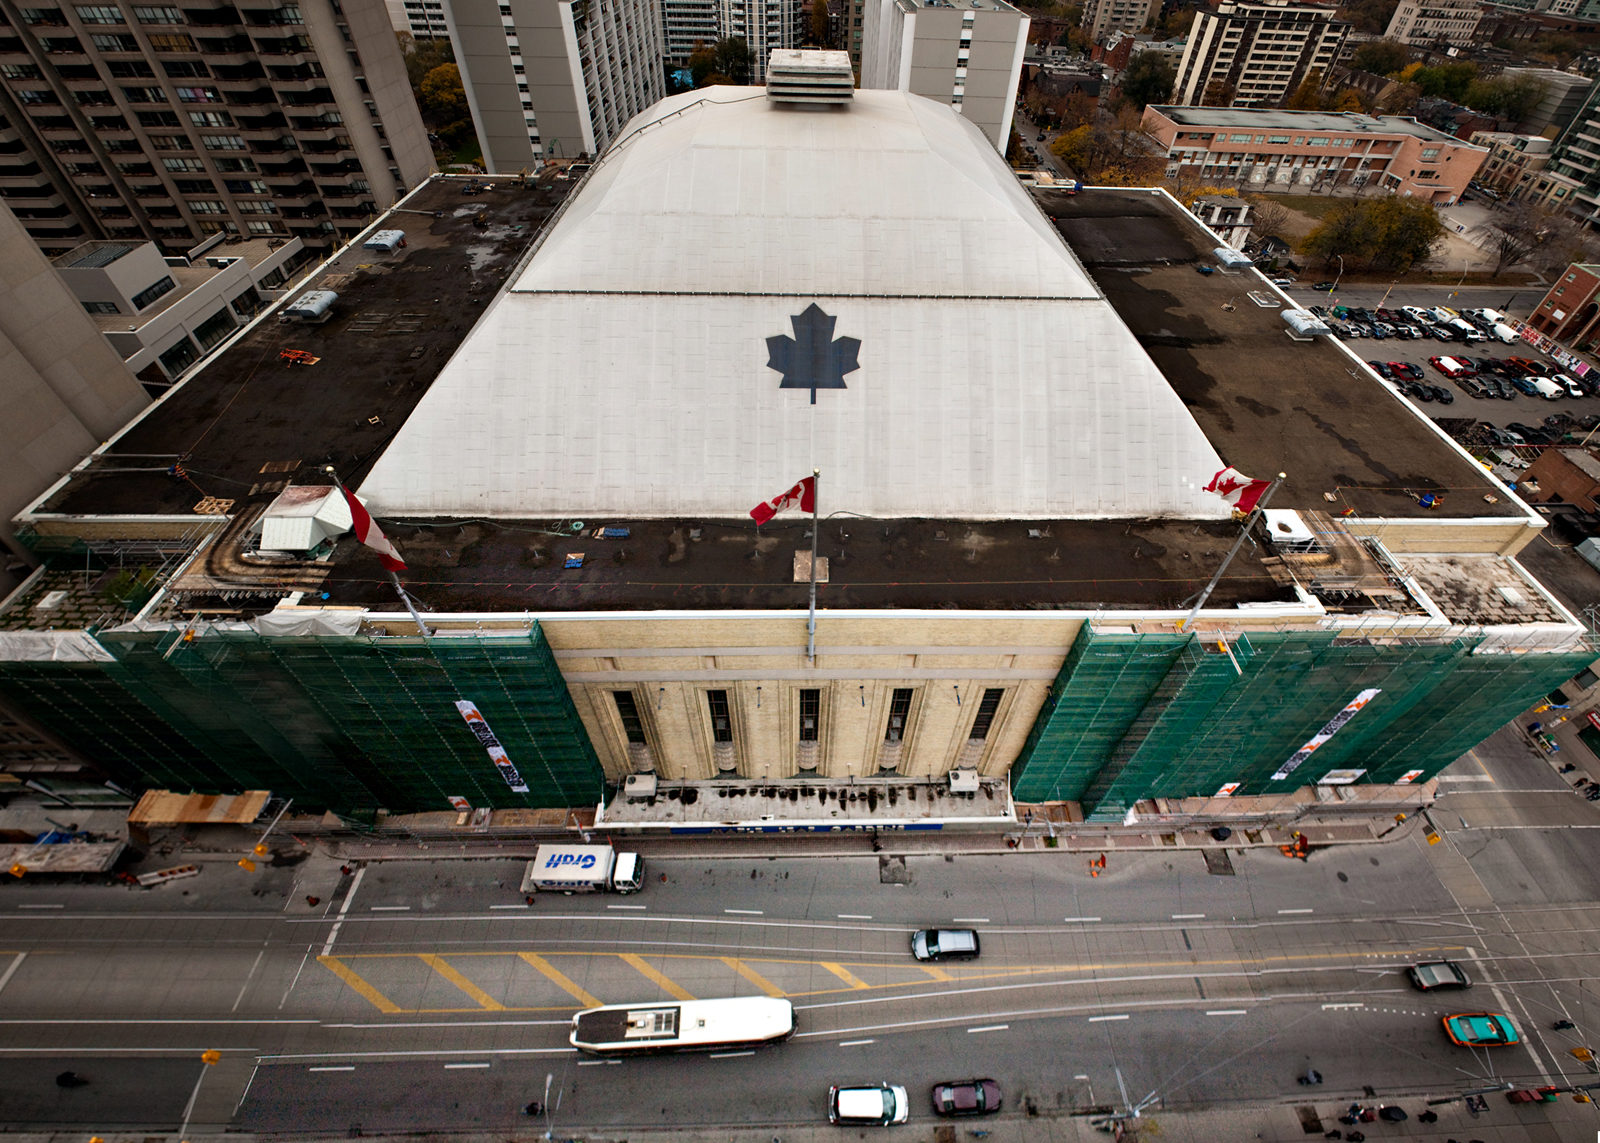 The former Maple Leaf Gardens during its conversion into the Mattamy Athletic Centre. November 2010. (Steven Goetz/Ryersonian Staff)